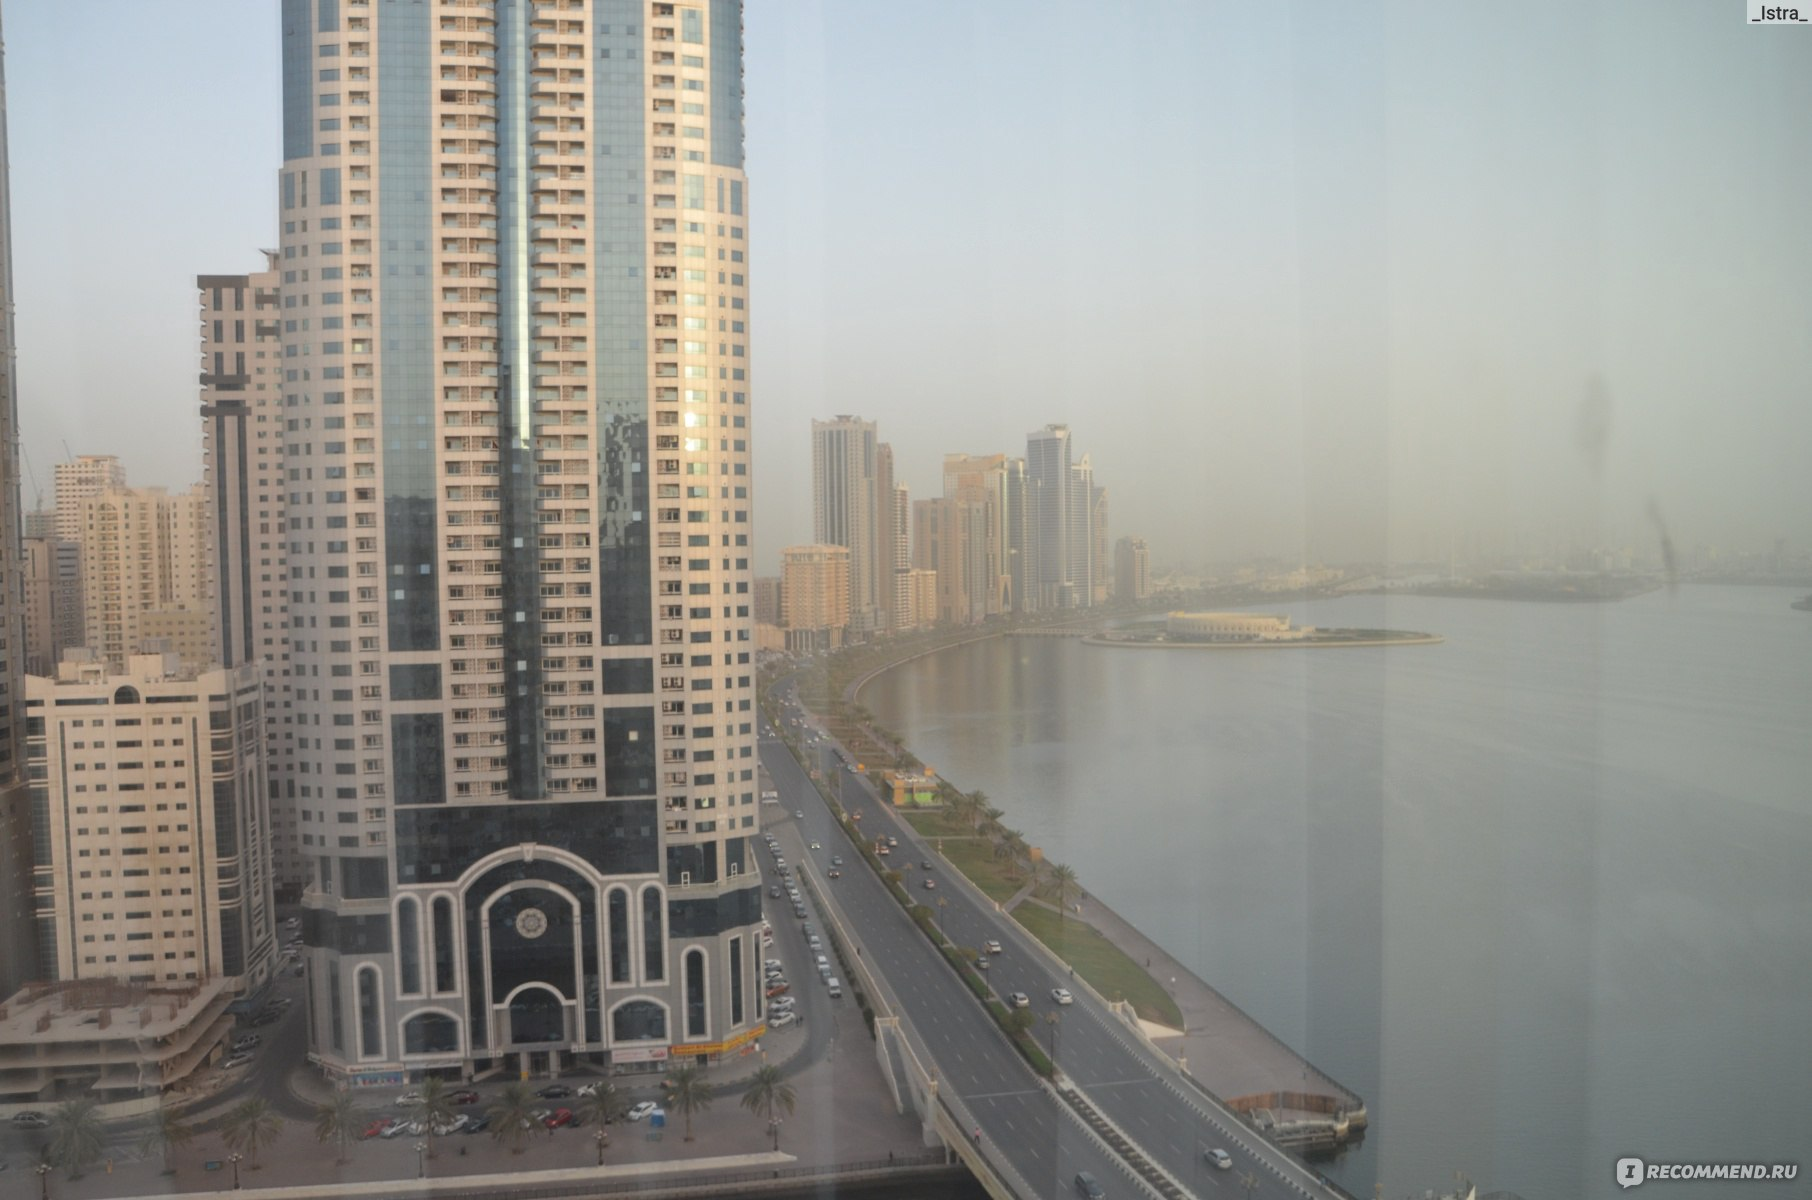 Golden Tulip Sharjah 4 (ОАЭШарджа): photo and description of rooms, hotel infrastructure, service, tourist reviews 97